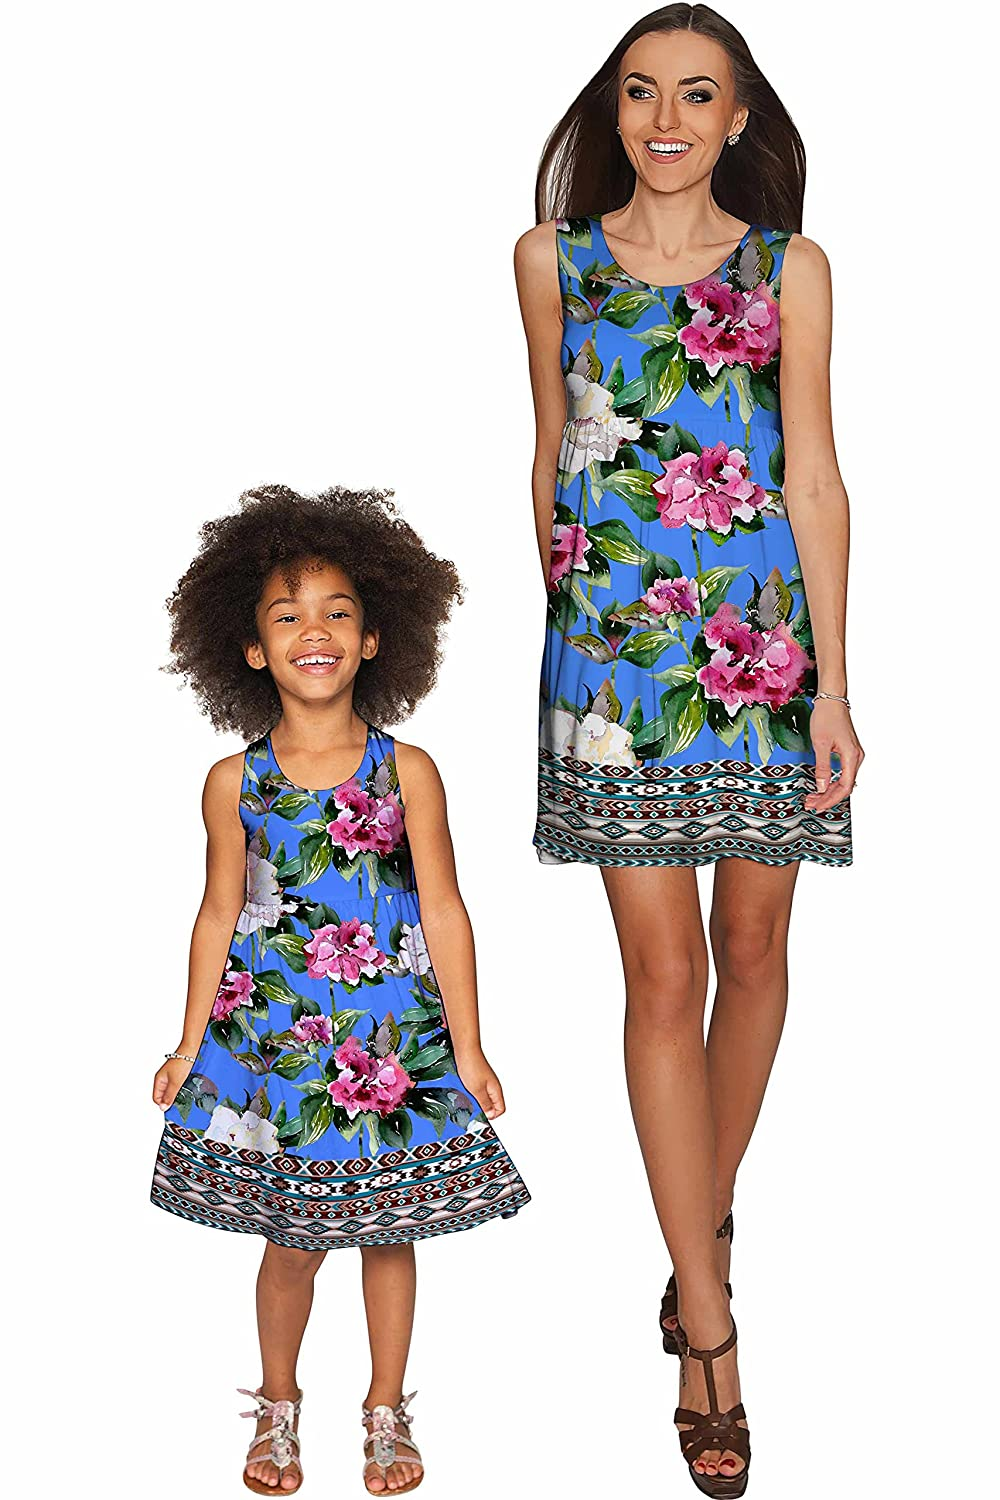 5657fafa9b0 Amazon.com: PineappleClothing Mommy and Me Matching Family Outfits - Mother  Daughter Dresses: Clothing